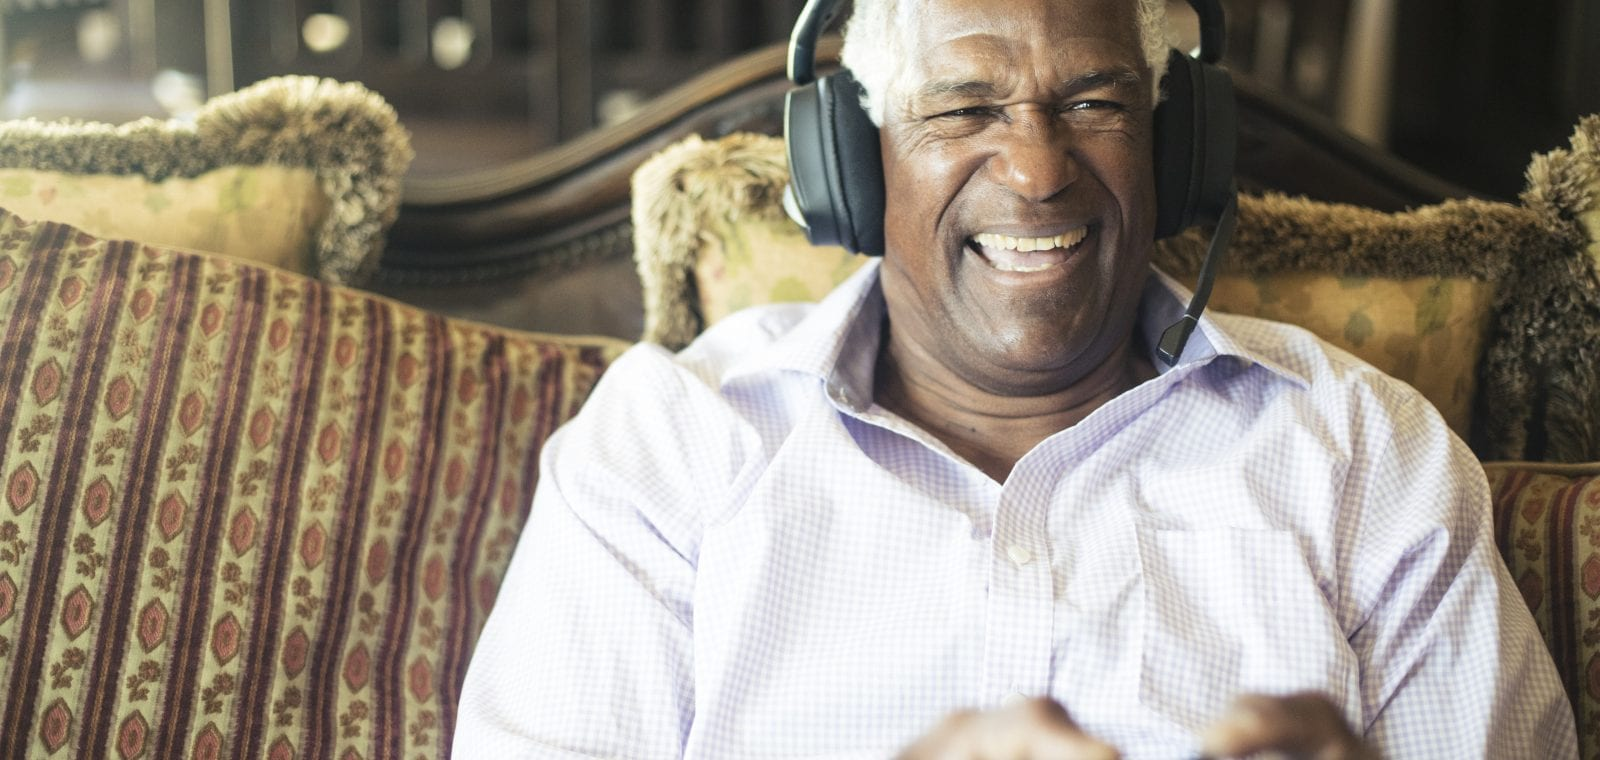 Senior Black Man Playing Video Games with Headphones